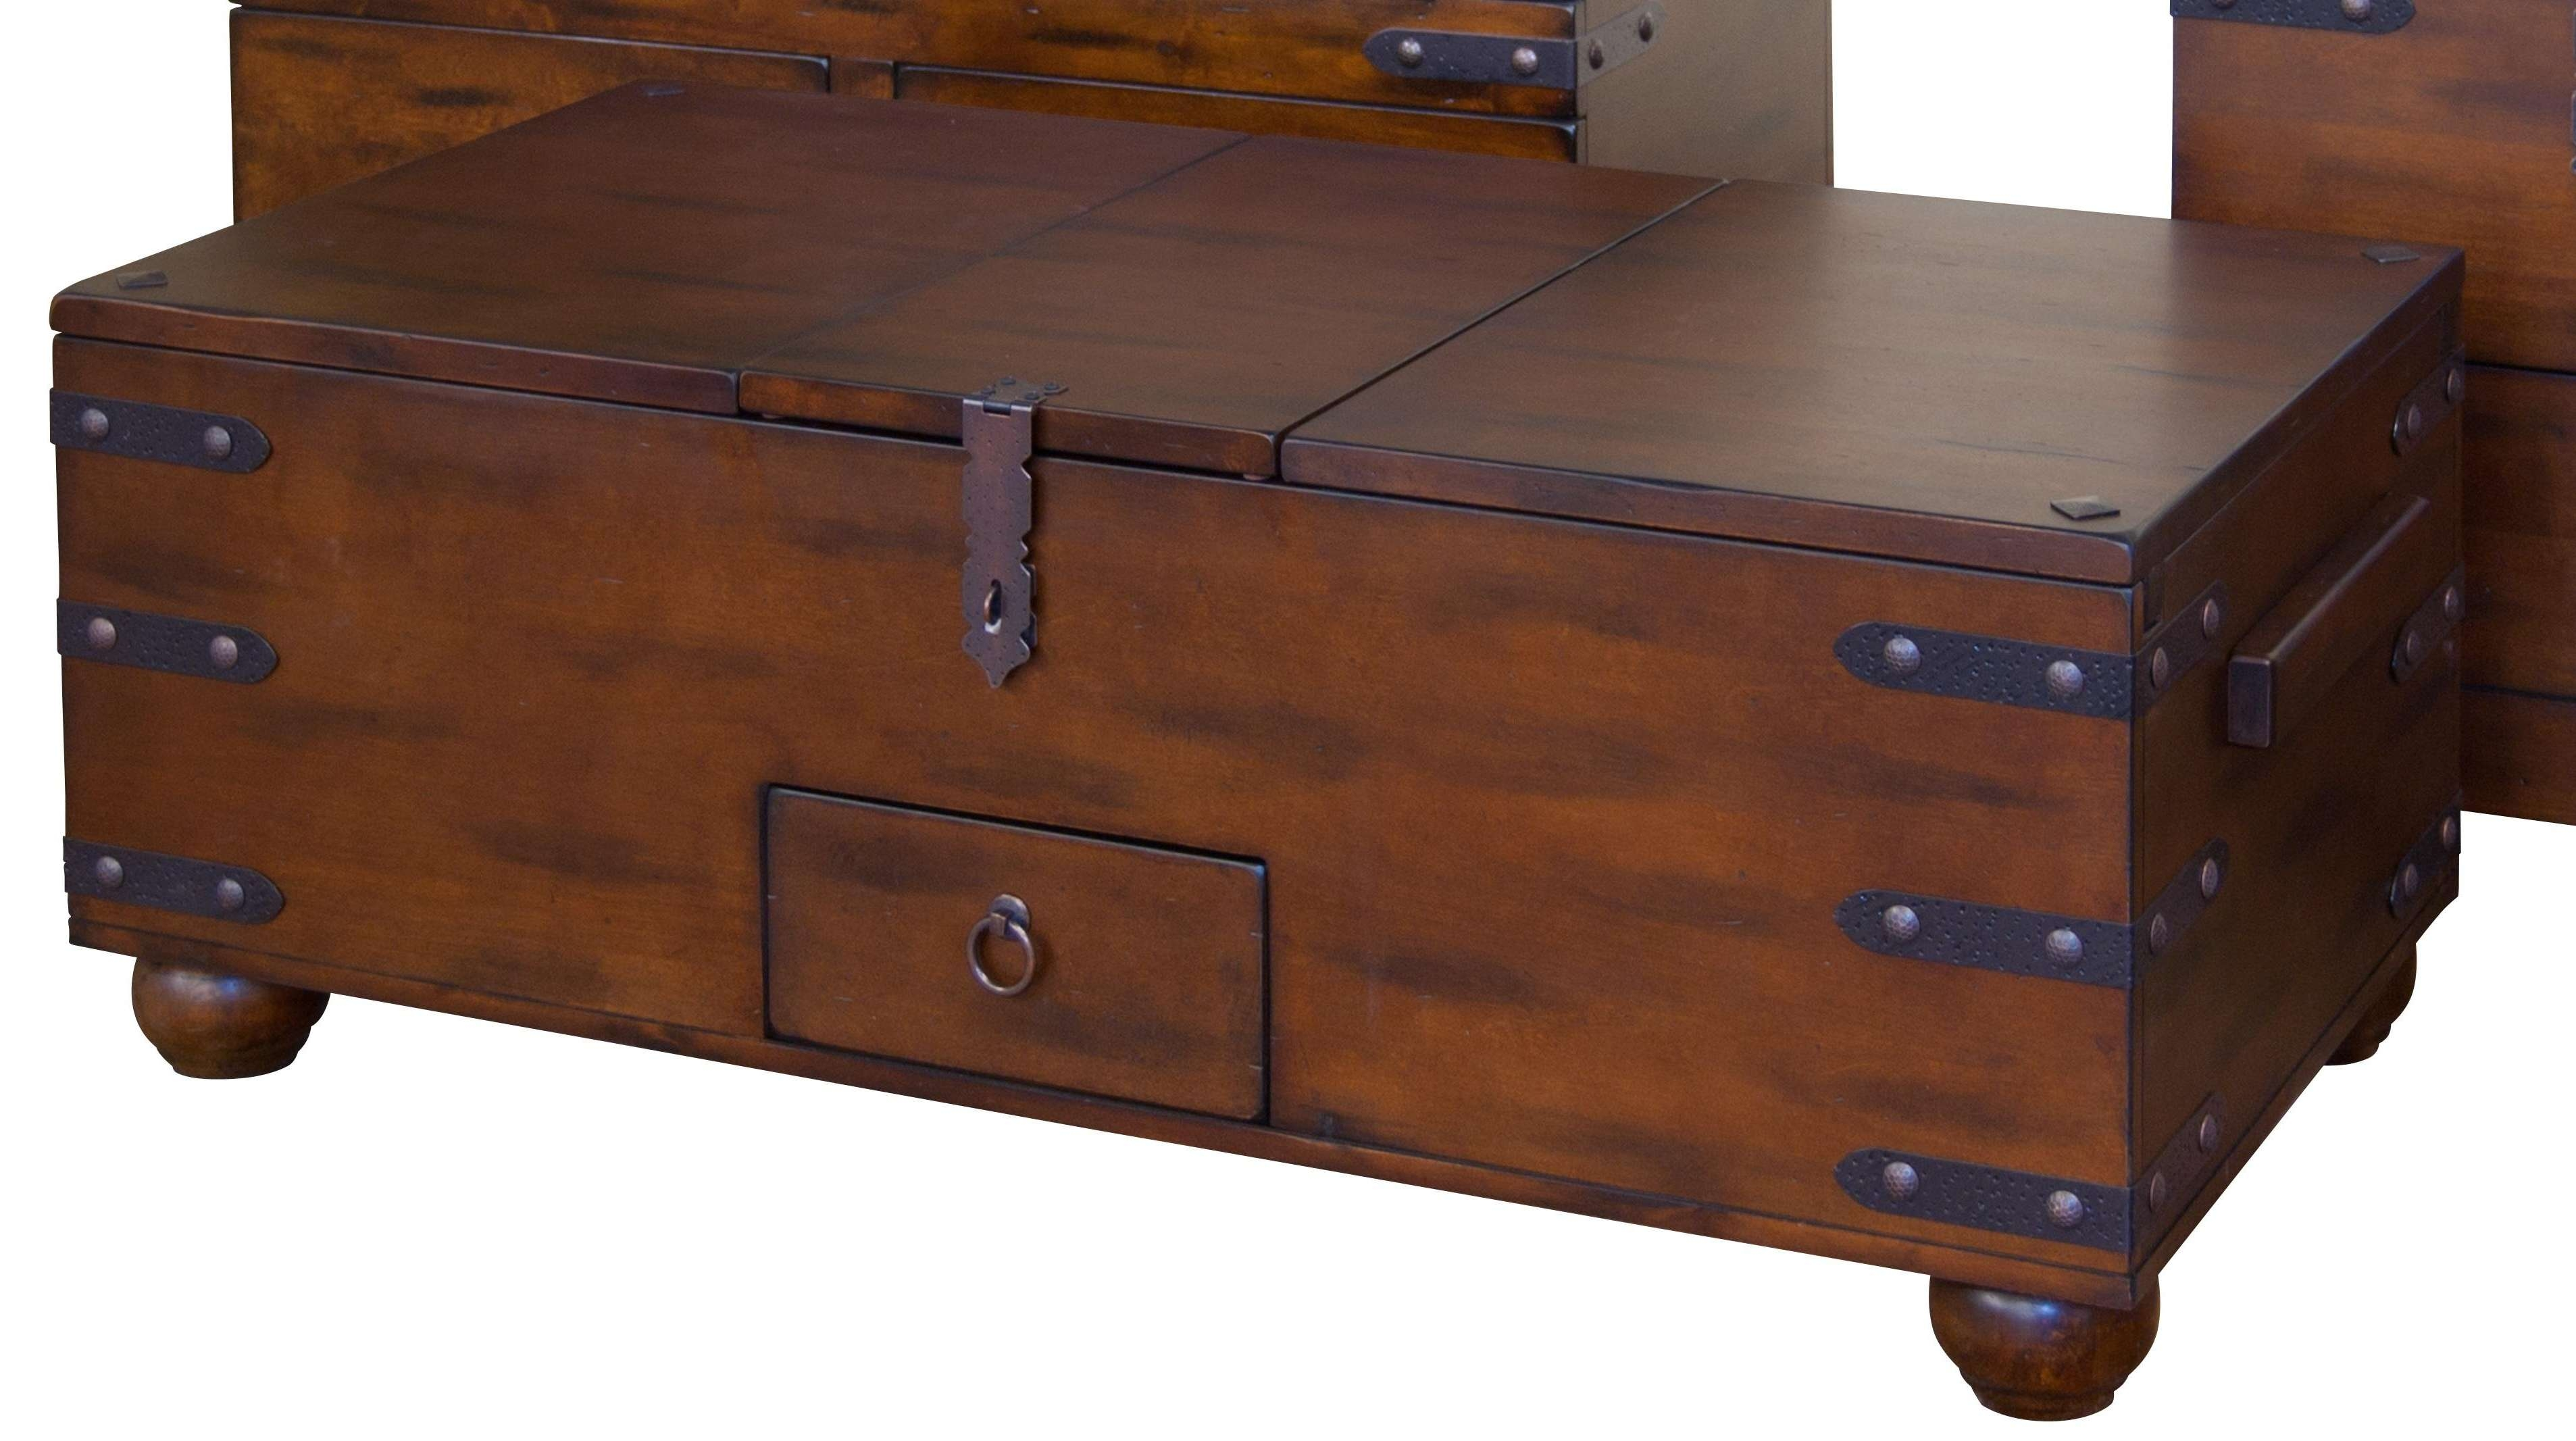 Small Storage Trunk Coffee Table • Coffee Table Ideas Regarding Popular Storage Trunk Coffee Tables (View 14 of 20)